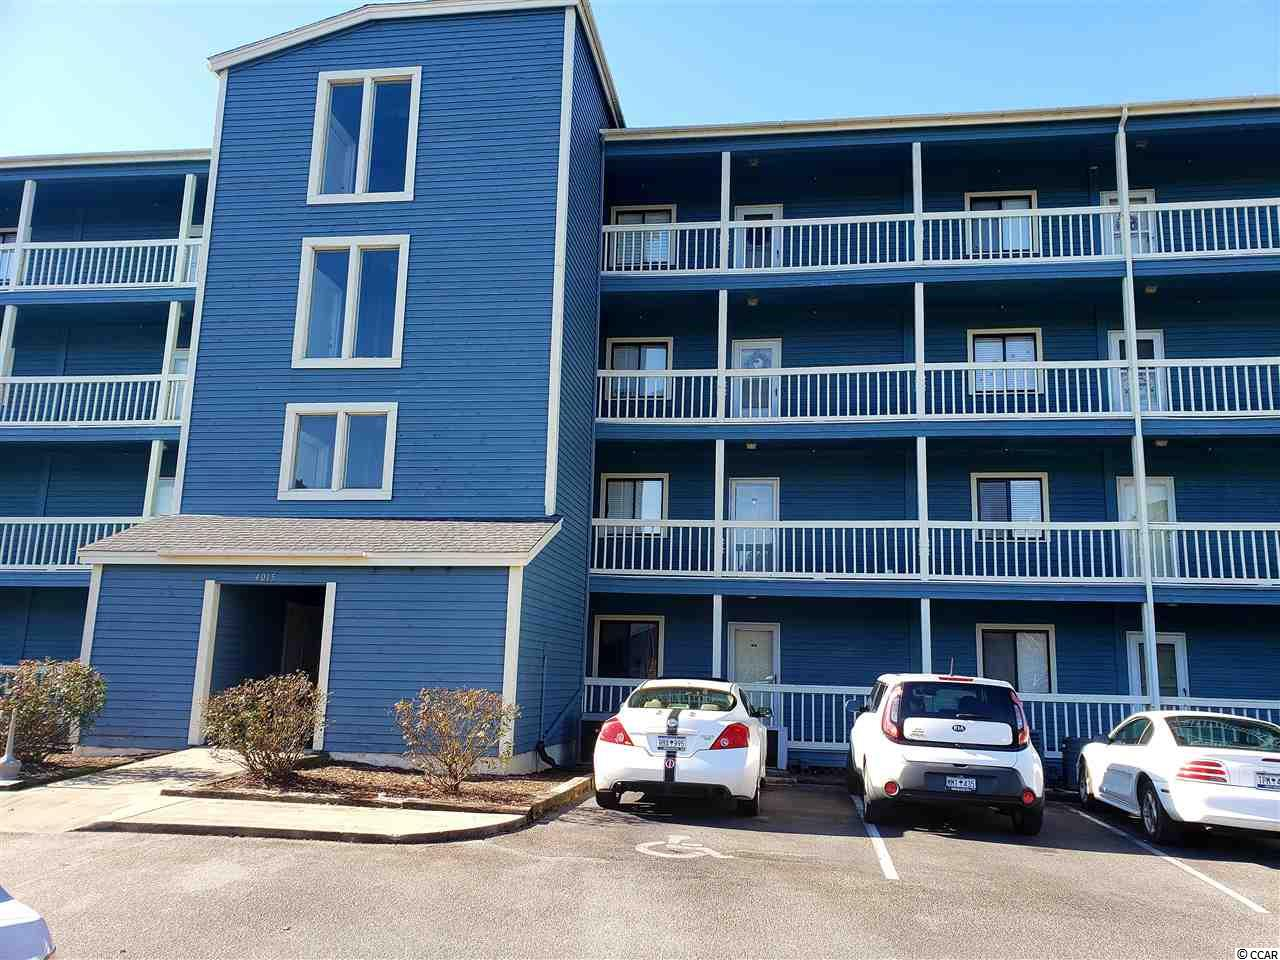 Newly renovated 2br/2bath condo located on the 2nd floor in Eagle Lake. Close to elevator. New laminate flooring throughout living area. New carpet in the bedrooms. Updated bathrooms, including new vanities,  mirrors, lighting and a full sized walk in shower. The balcony has windows and plexiglass which means the doors can stay open for added space at any time. Make an appointment to see it today!